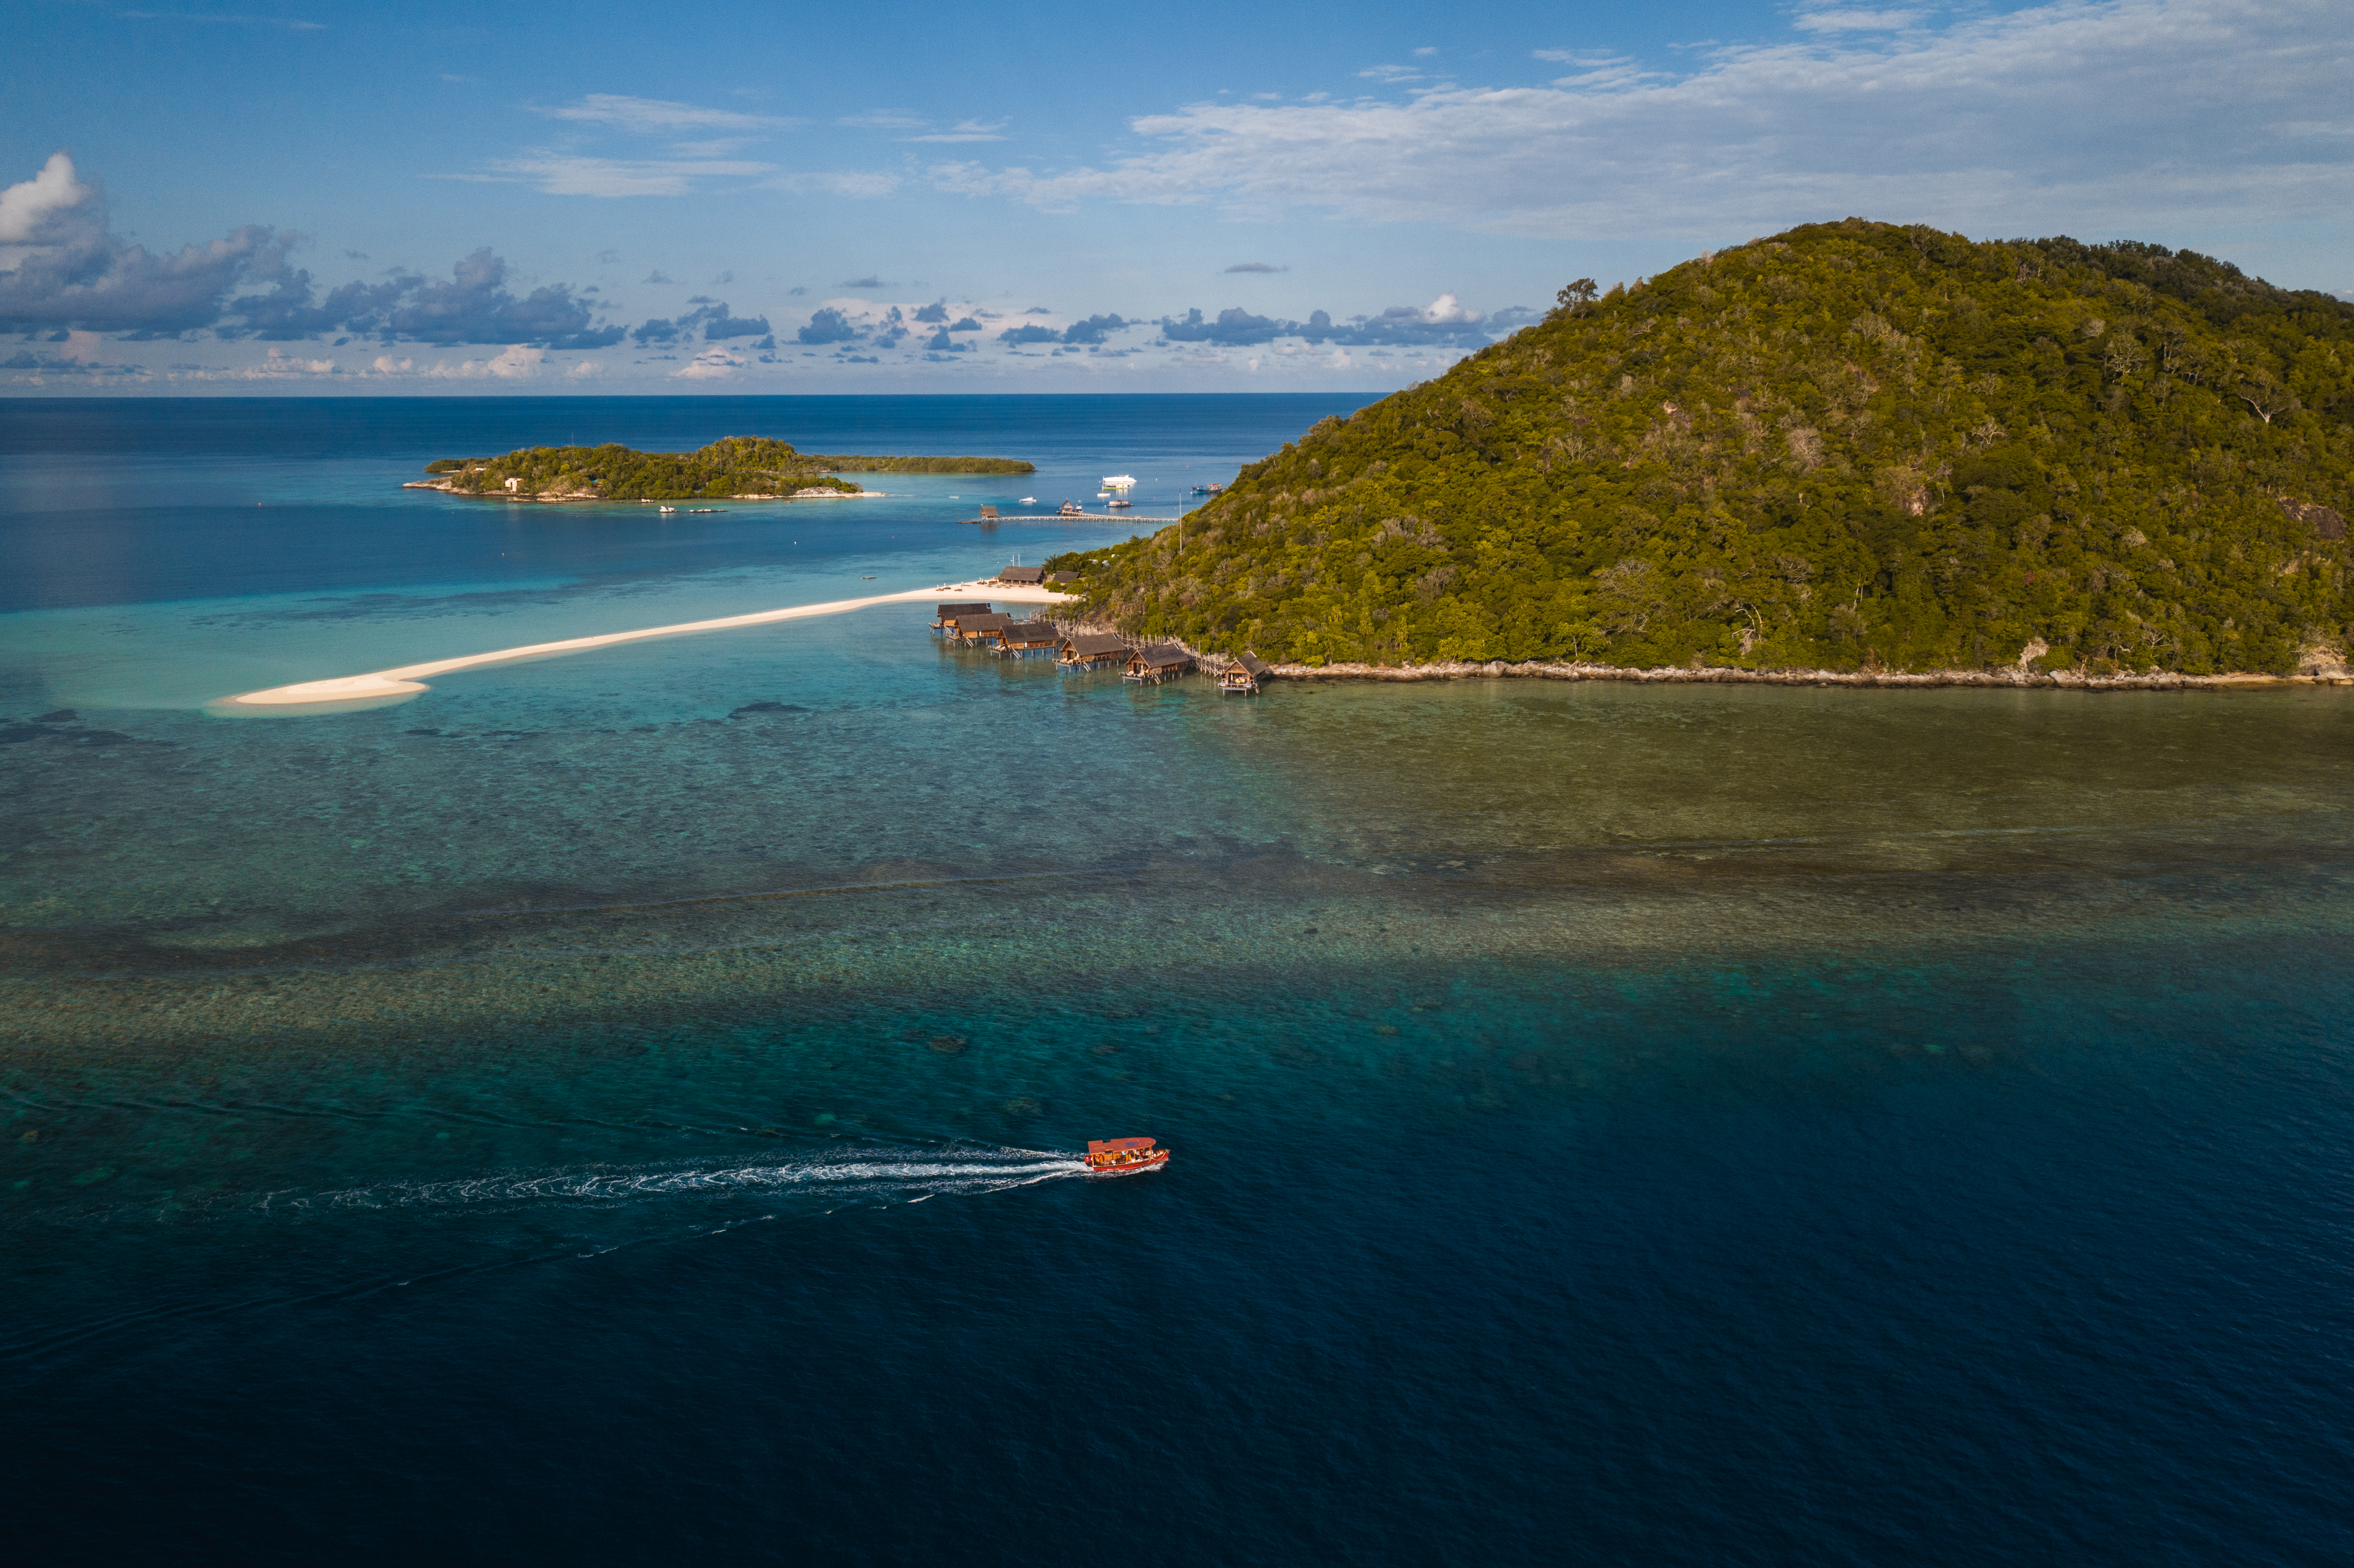 aerial-view-sunset-boat-trip-in-blue-lagoon-islands-background